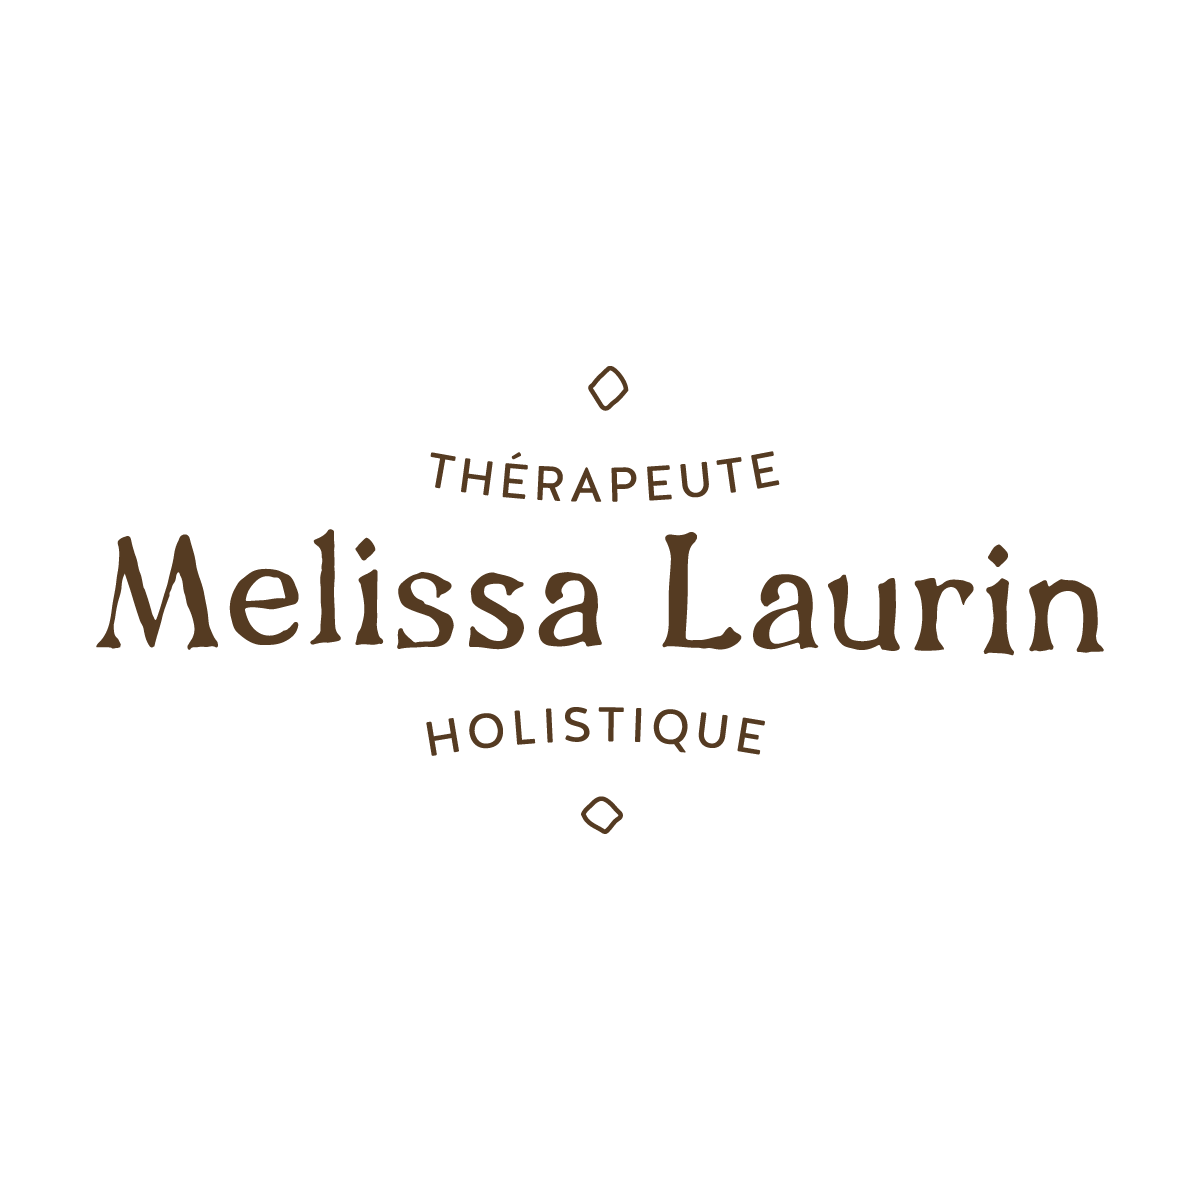 Melissa Laurin Thérapeute